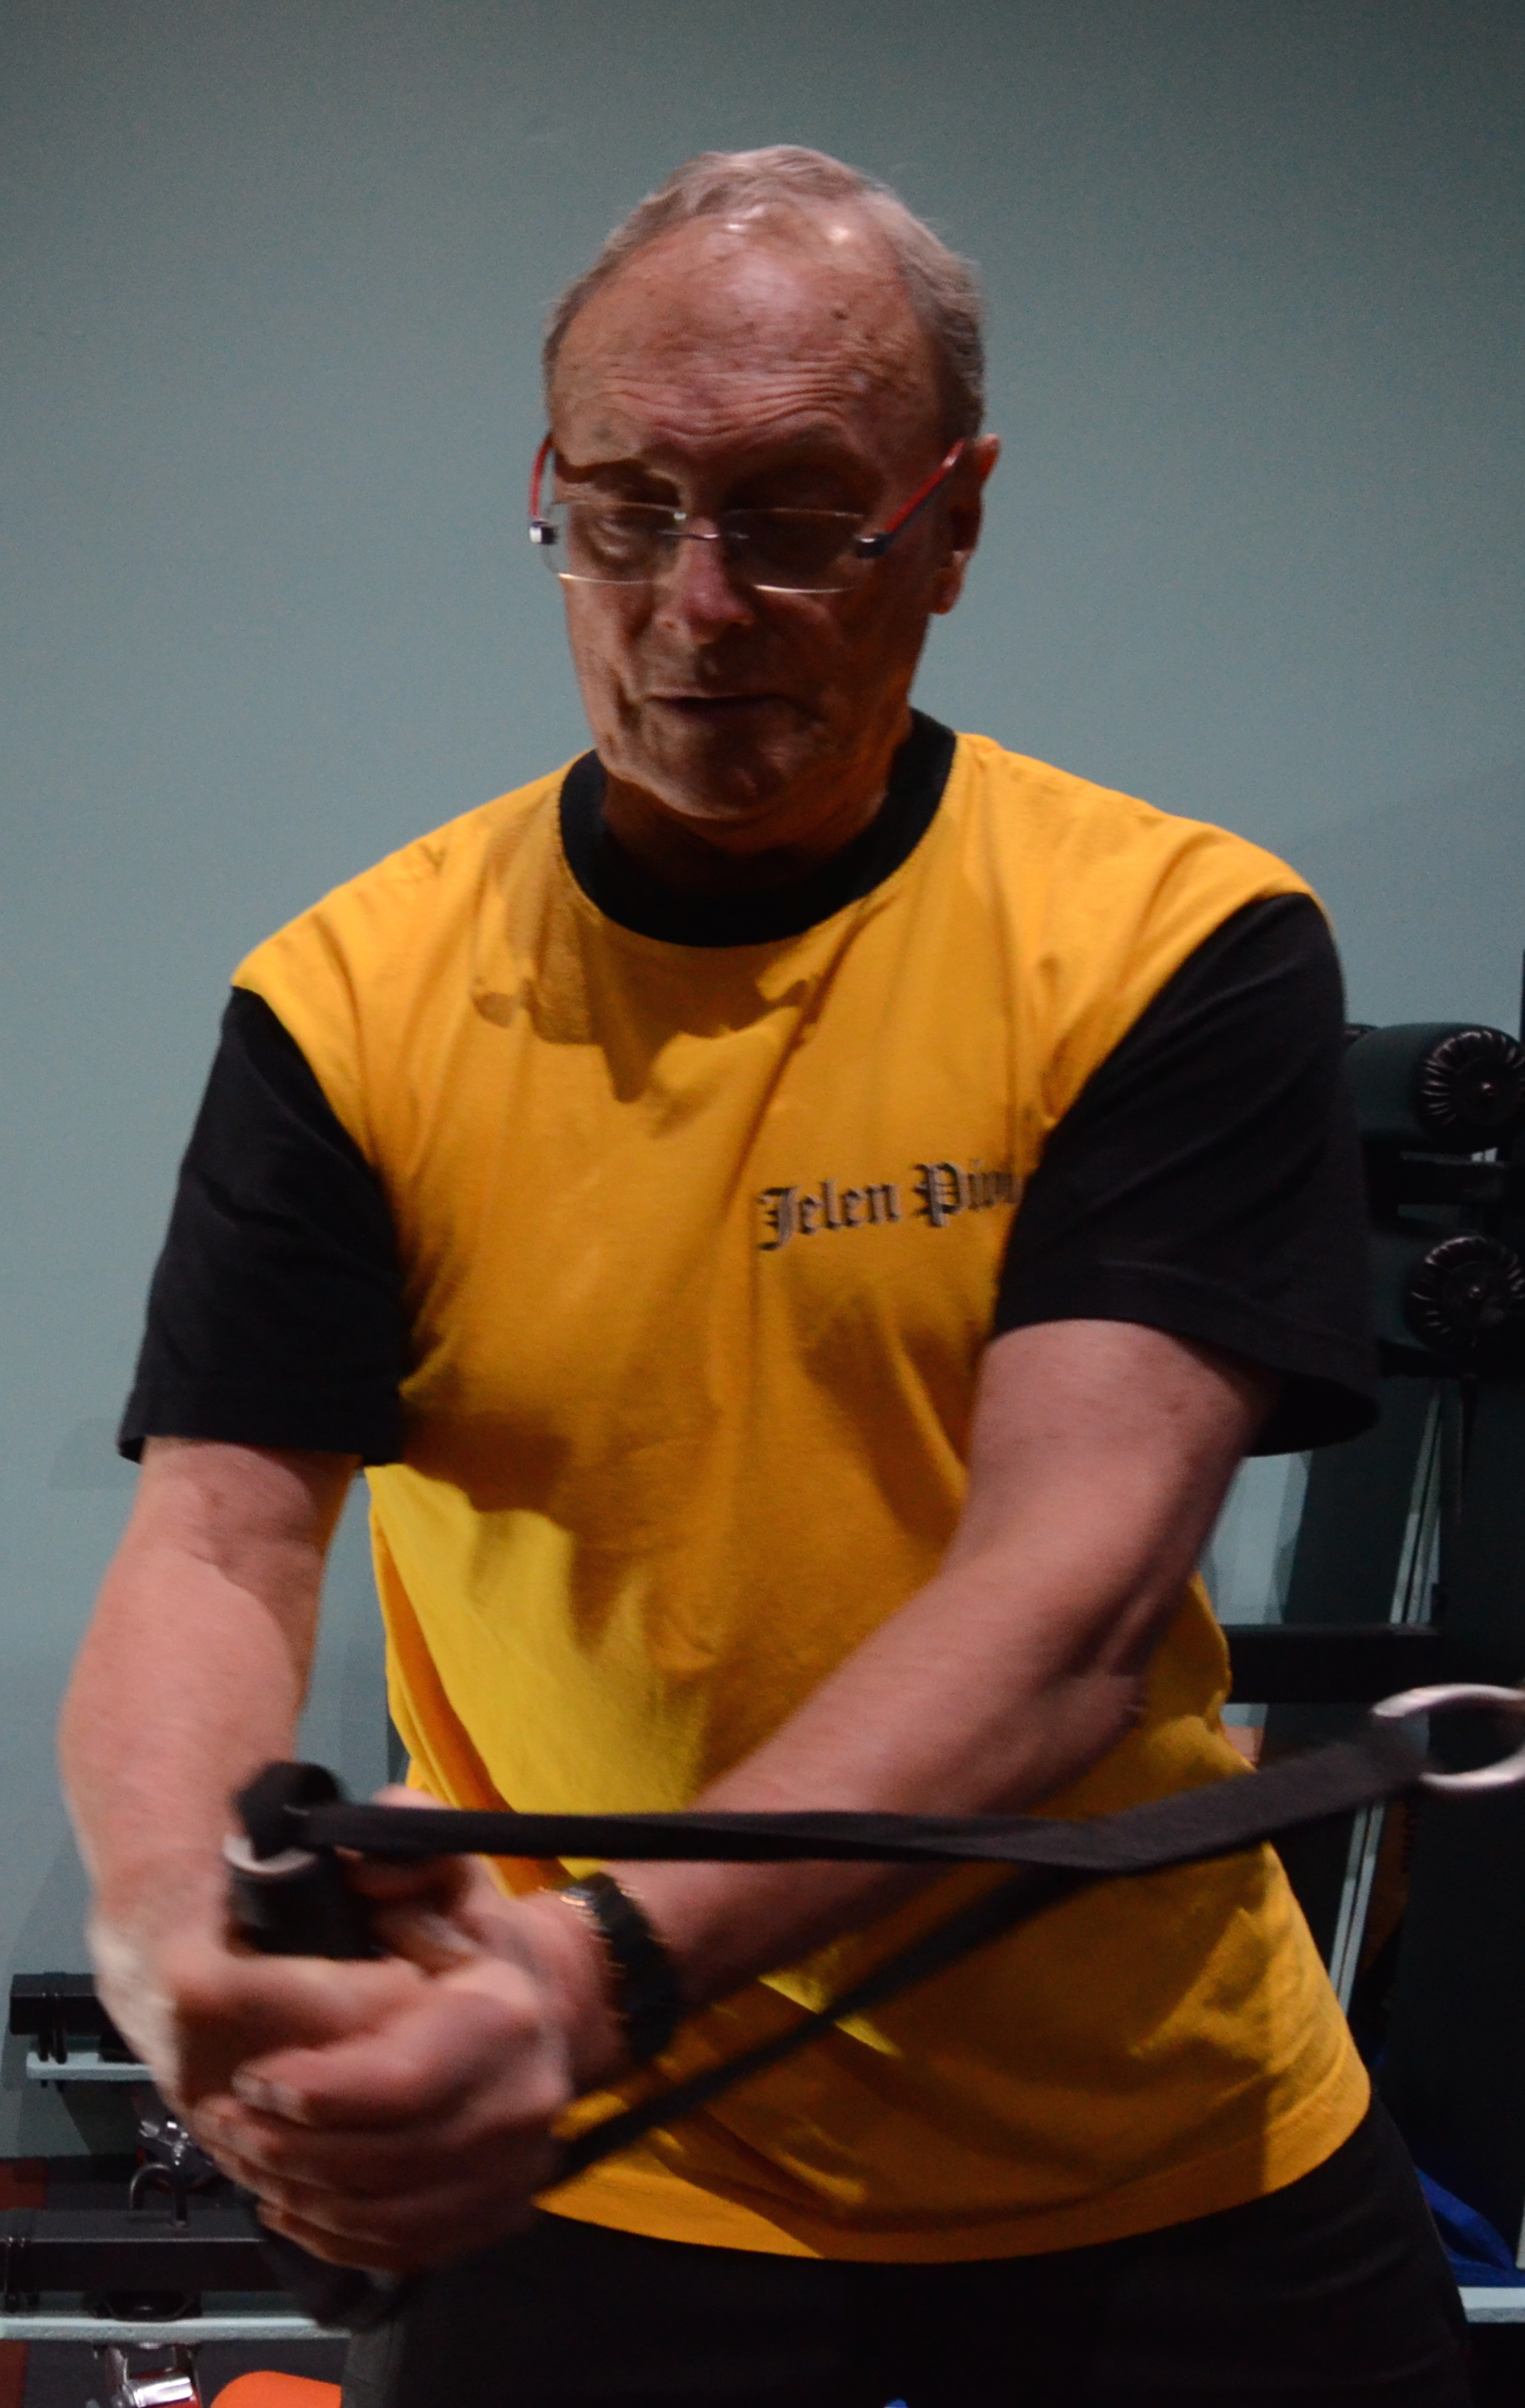 Tony's performance training sessions include tailored strategies for his theraputic needs, carryover movements to assist his daily lifestyle and drills transferable into his sport of choice, golf